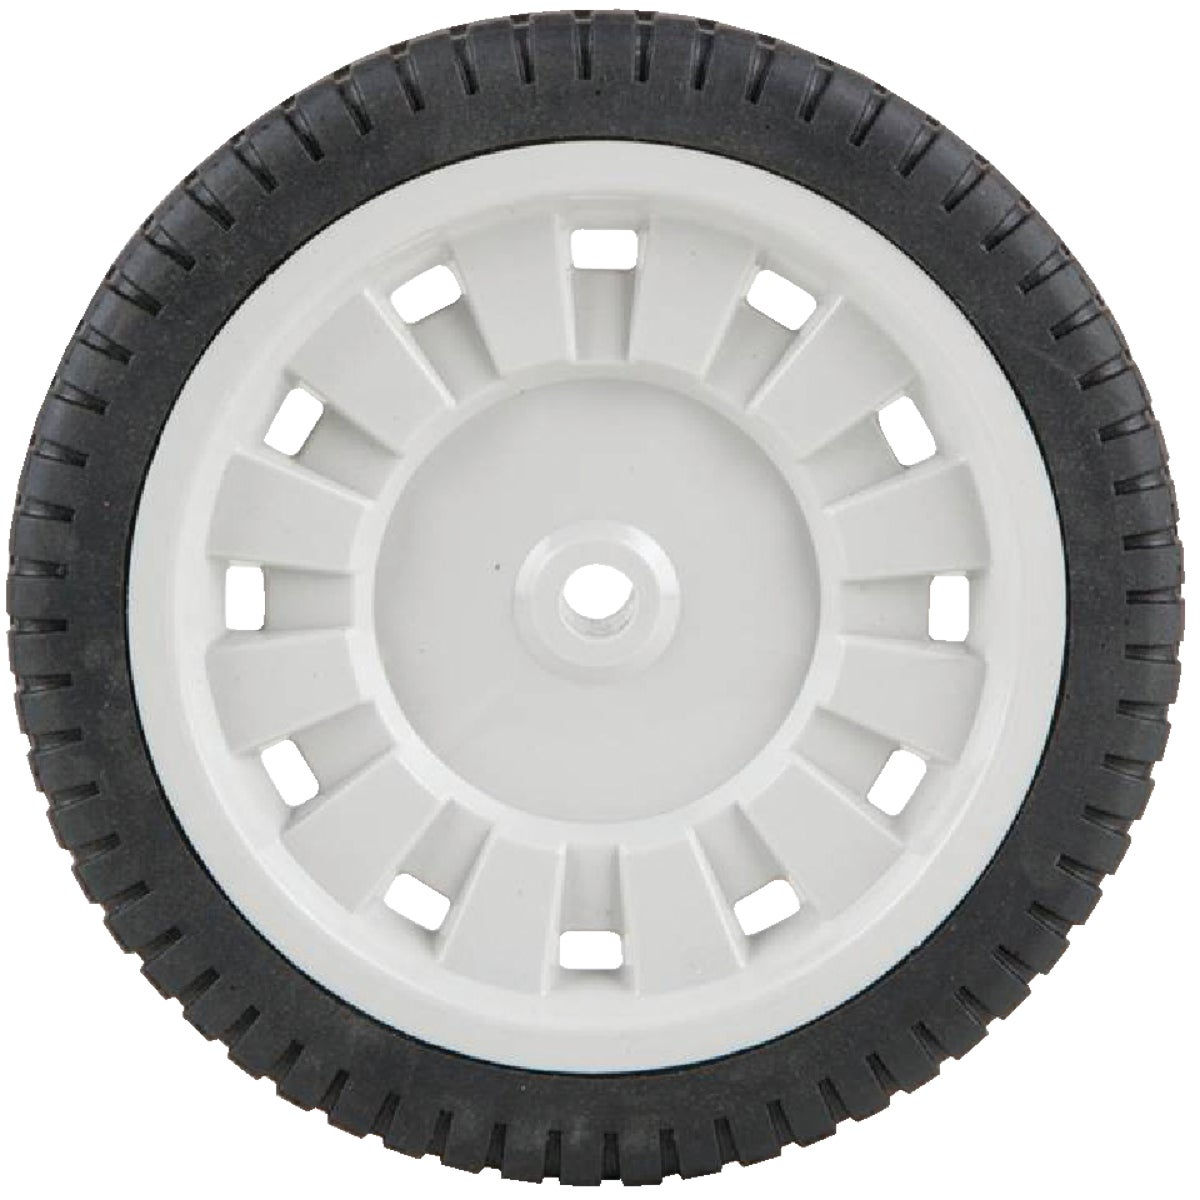 "8"" UNVRSL PLASTIC WHEEL - 490-322-0011 by Arnold Corp"